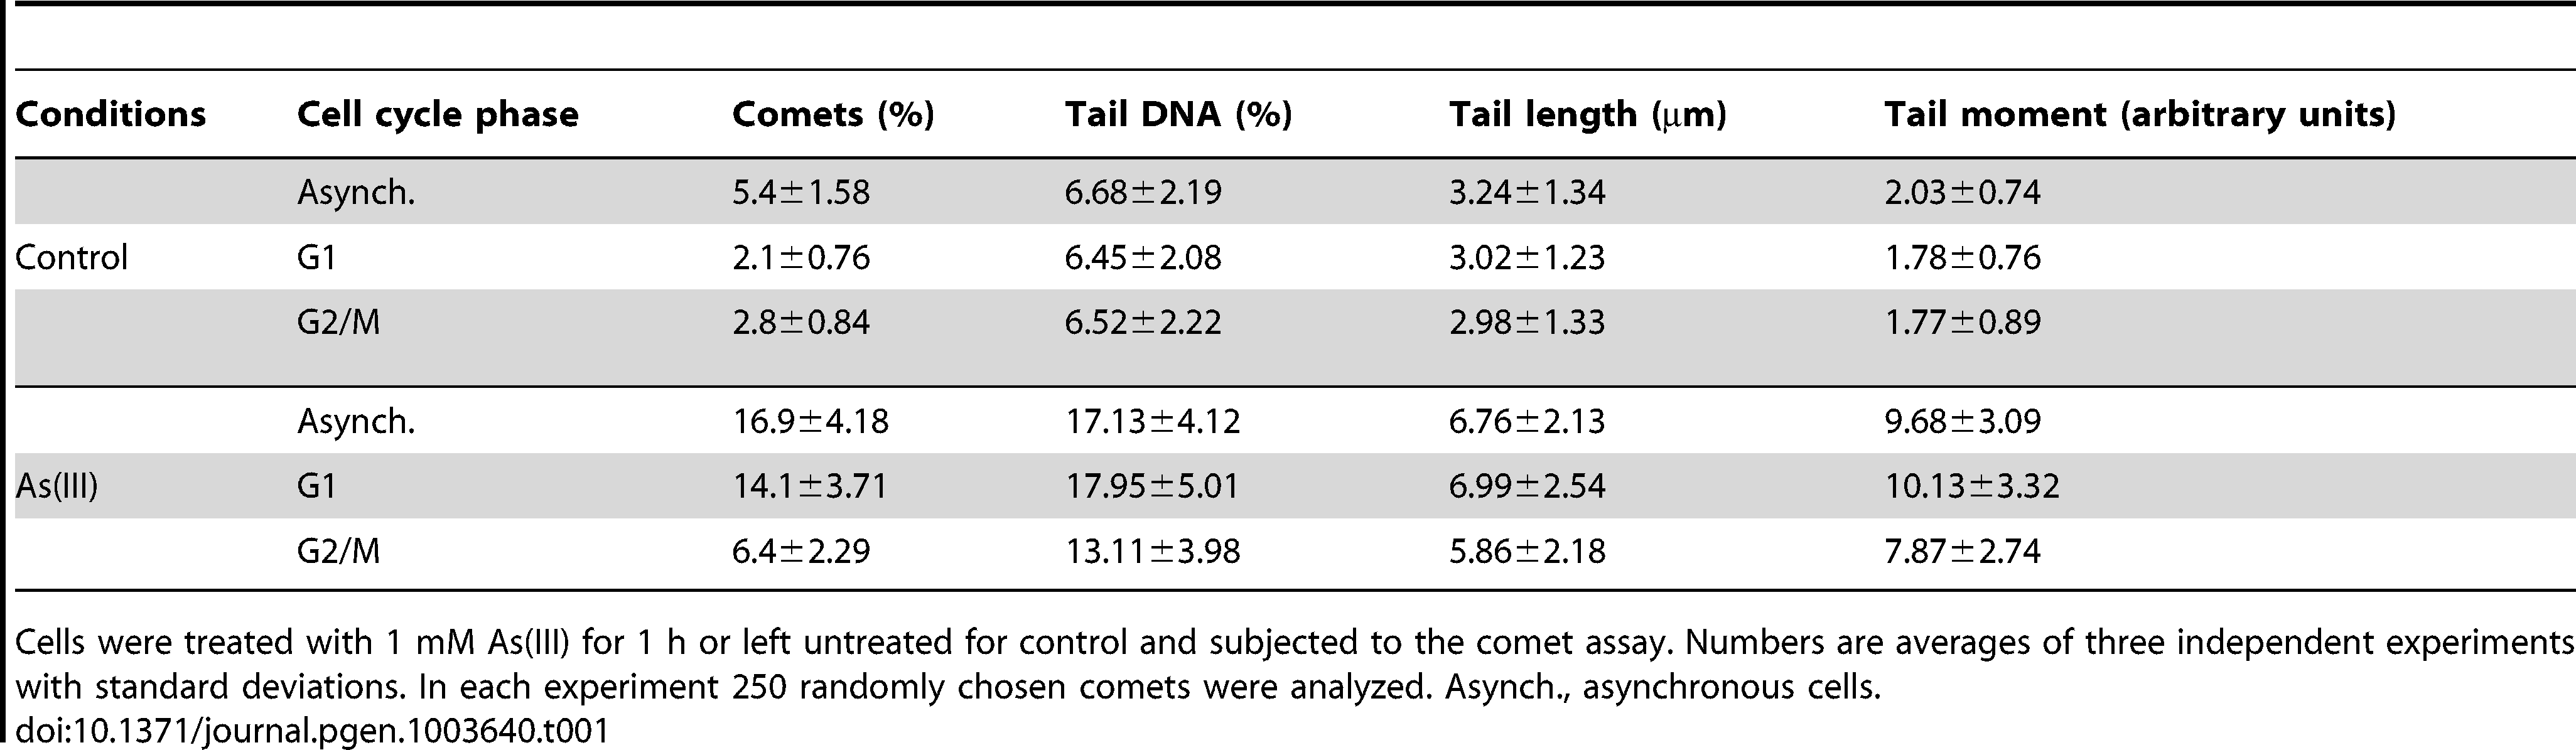 Analysis of As(III)-induced DNA damage by the comet assay.